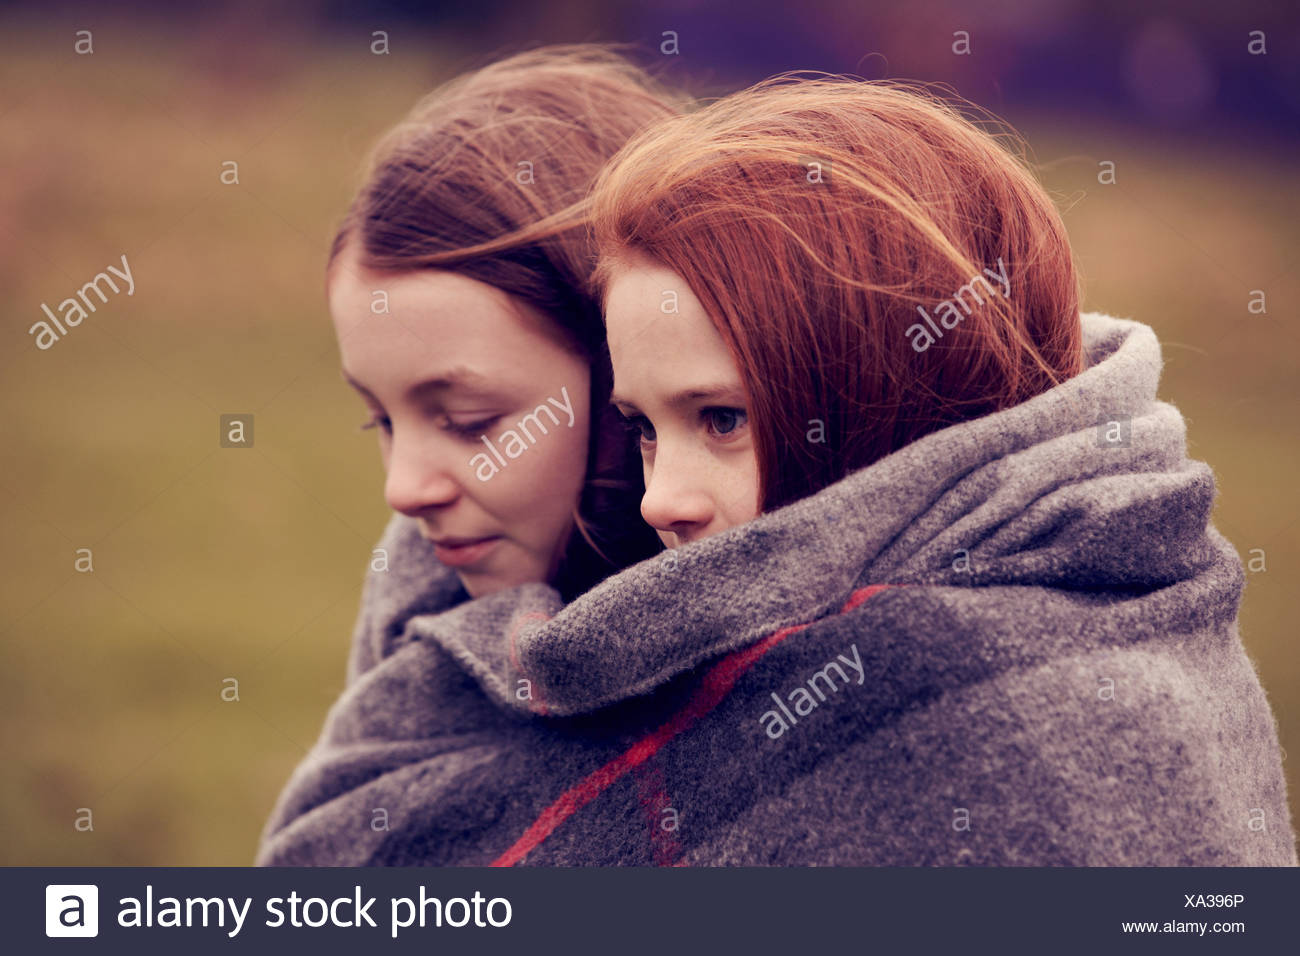 Girls wrapped in a blanket outdoors - Stock Image